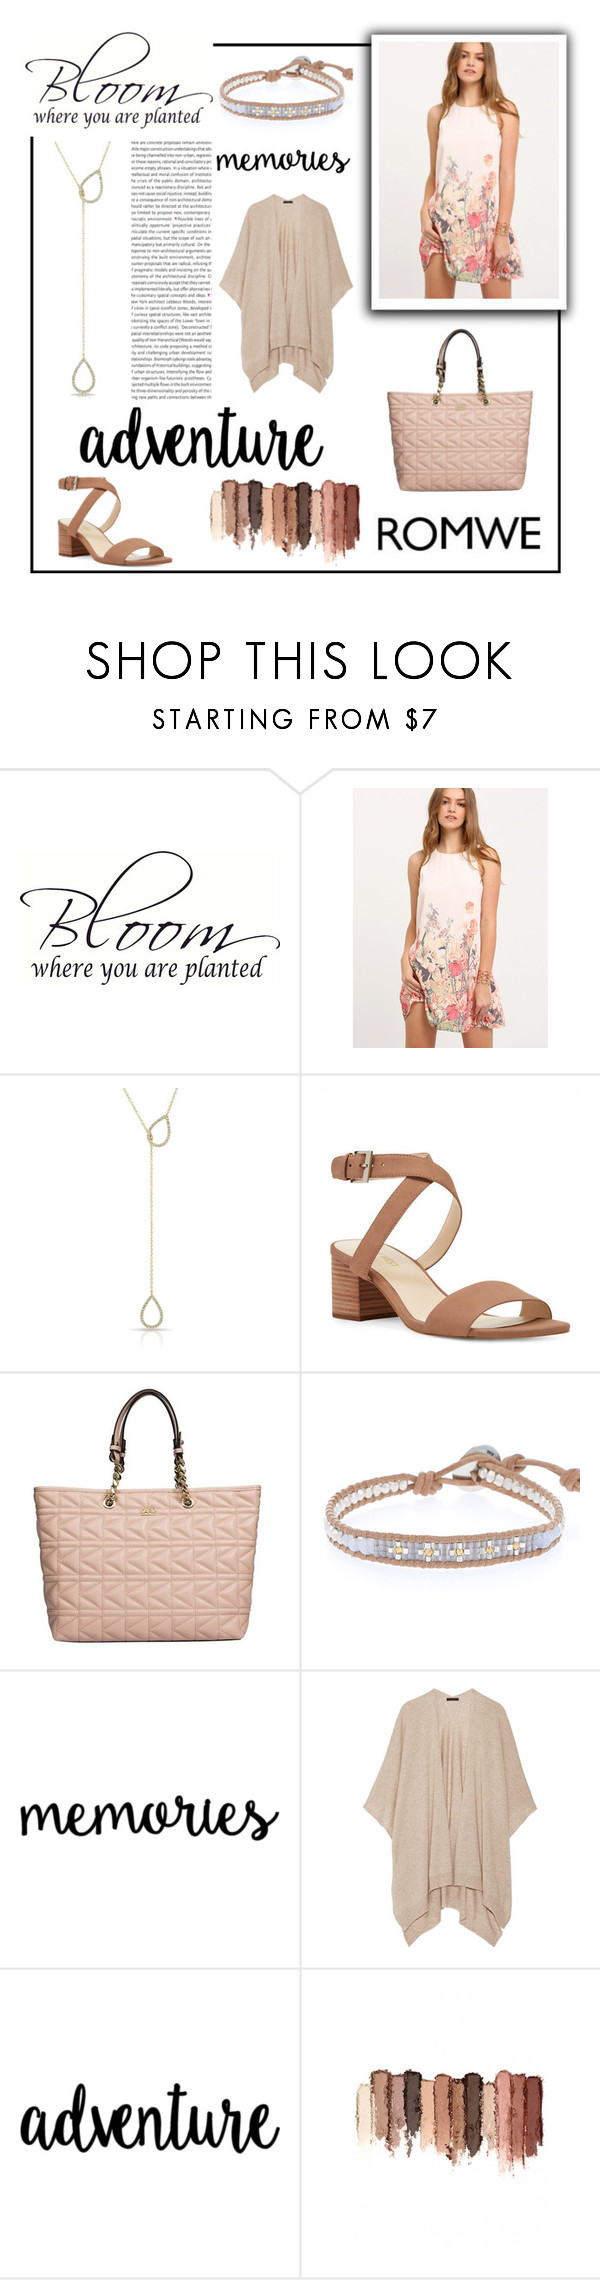 """Vintage Flower Girl"" by roseforbes ❤ liked on Polyvore featuring Nine West, Karl Lagerfeld, Chan Luu, The Row, tarte and vintage"